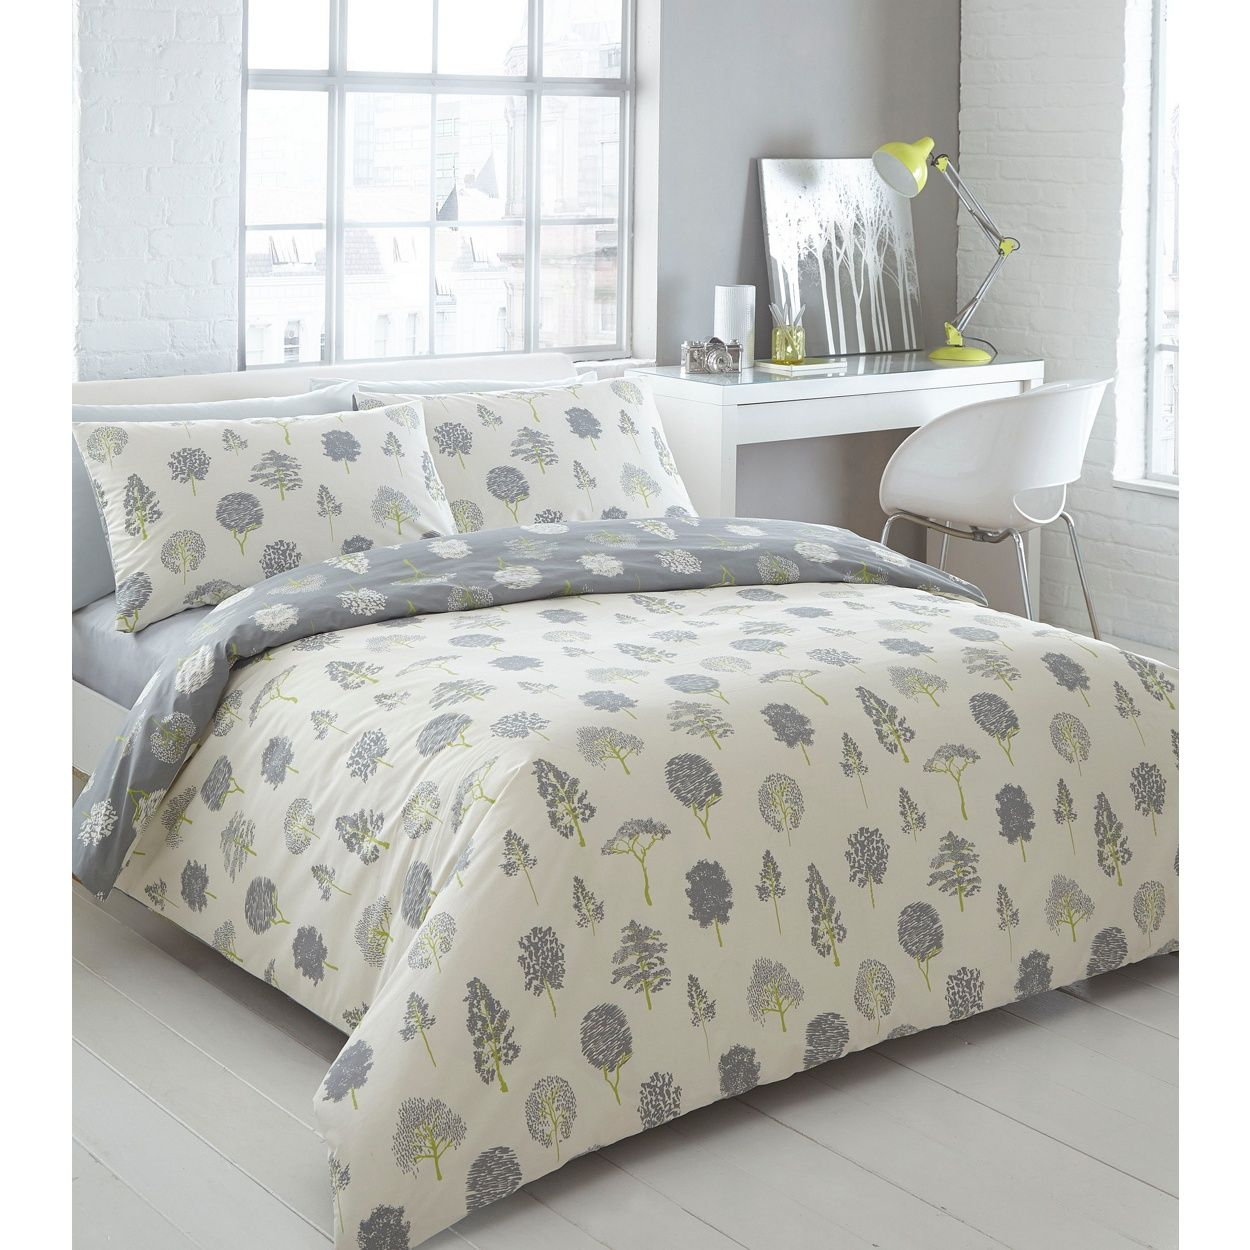 Tree print duvet cover sweetgalas ben de lisi home designer cream tree print bedding set at gumiabroncs Image collections